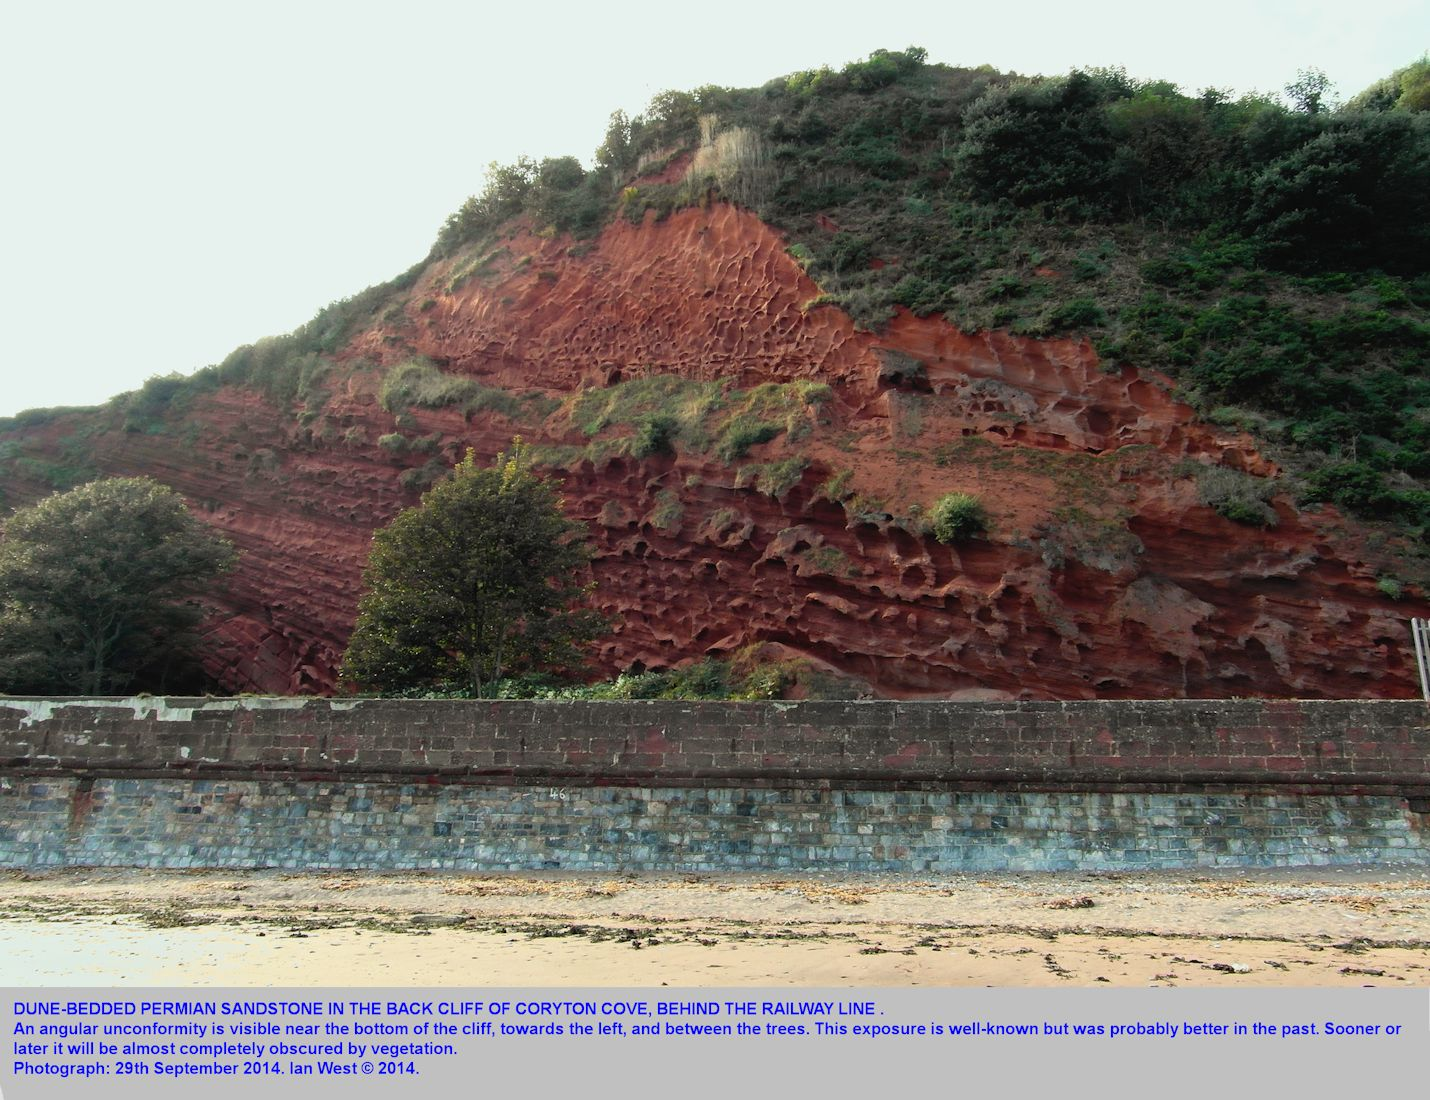 An unconformable relationship of Permian sandstone, resulting from sand dune bedding, back of Coryton's Cove, Dawlish,  Devon, 2014